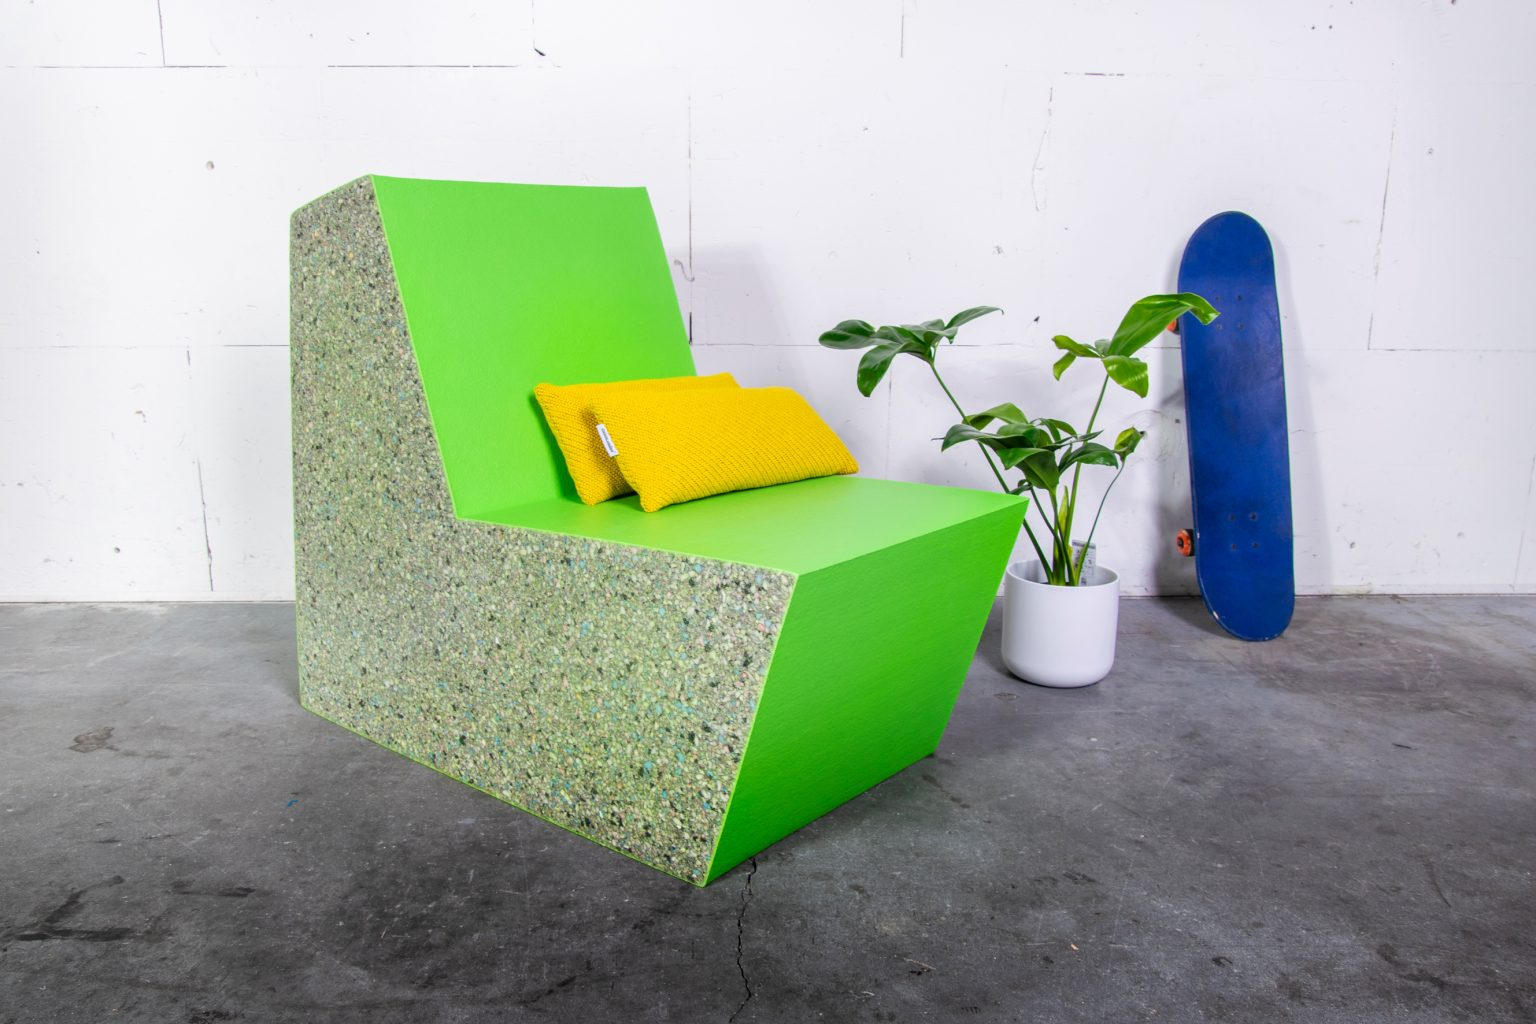 Biennale Interieur - Belgium's leading design and interior event - Primary-solo-recycled-phas-01.jpg